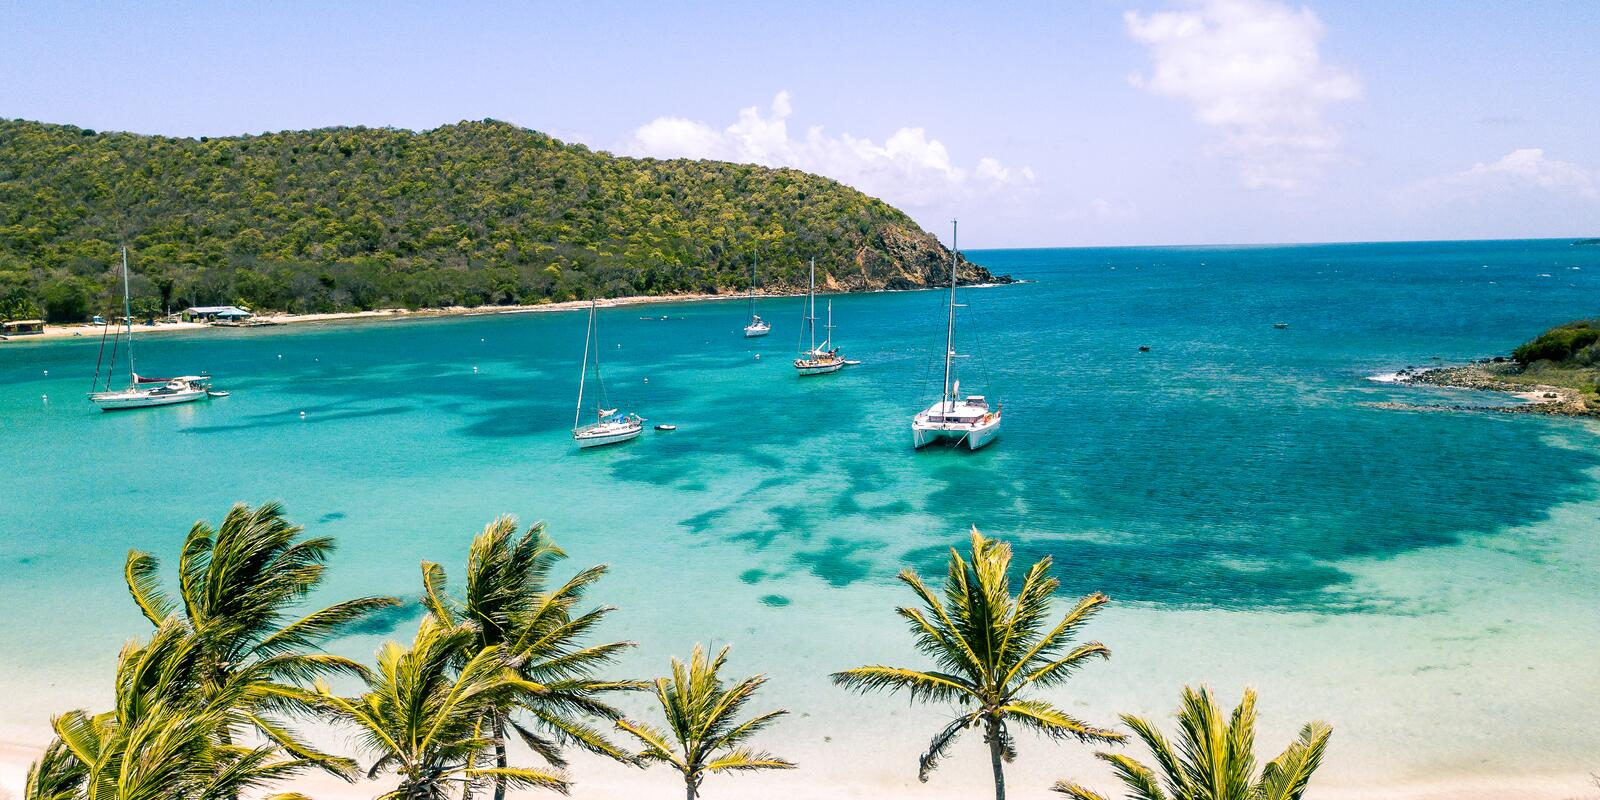 Caribbean and Martinique, sailing with a private skipper ... what a splendor!